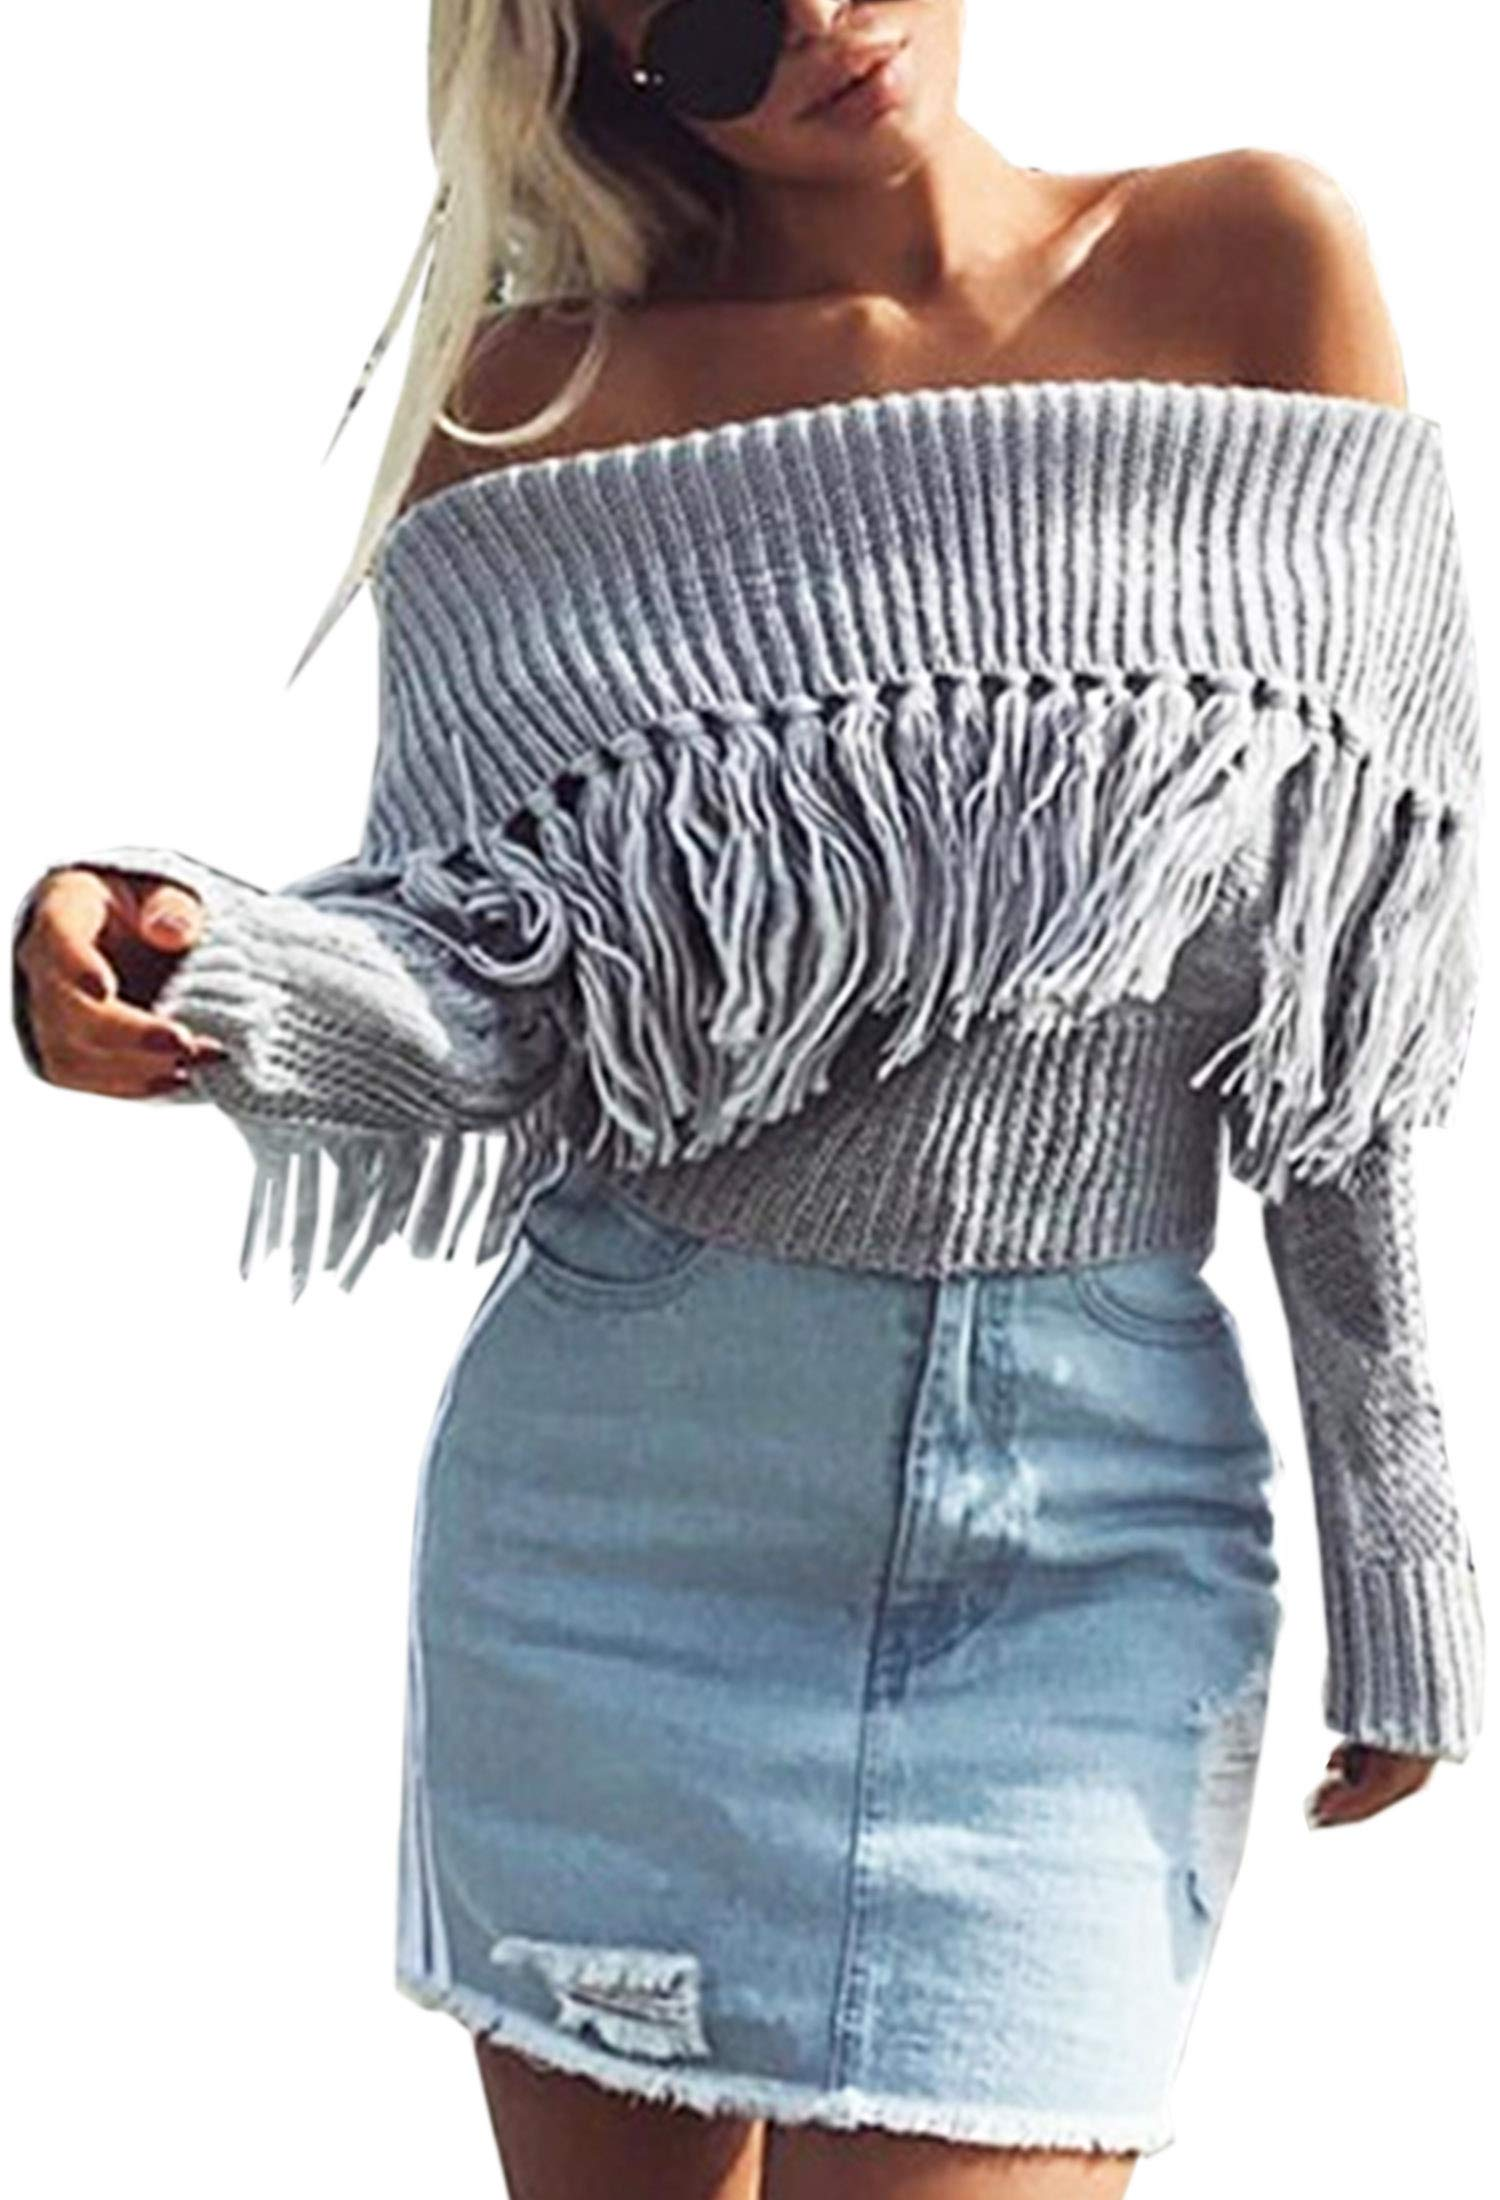 Angashion Women's Sexy Off Shoulder Long Sleeve Slim Fit Fringe Knit Crop Top Sweater Grey M